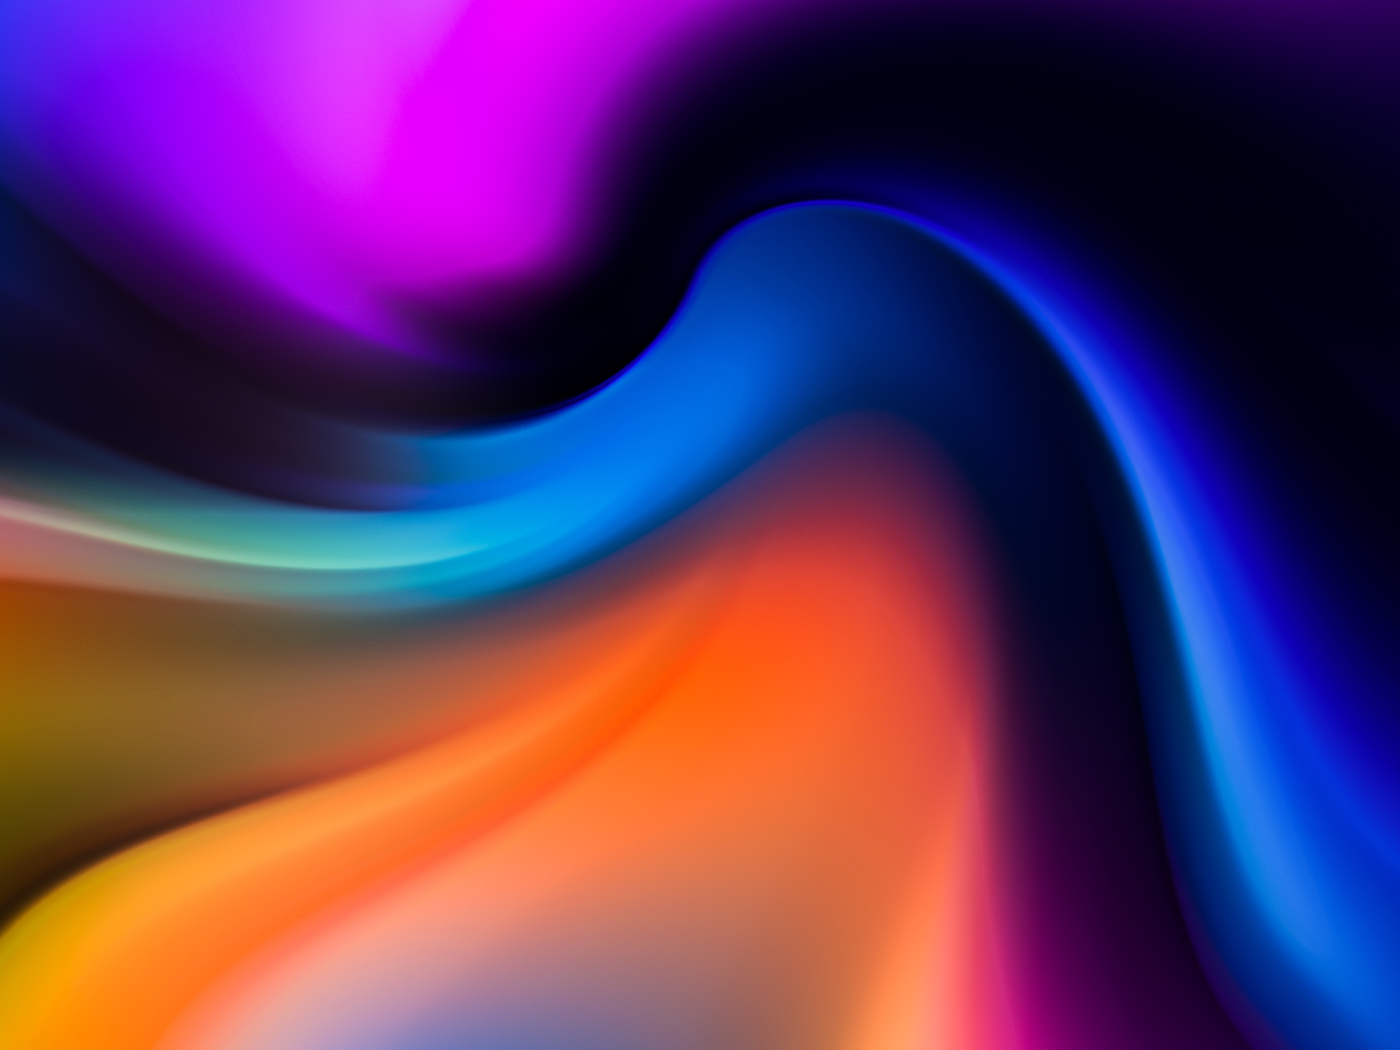 Color Noise 8K Wallpaper in 1400x1050 Resolution